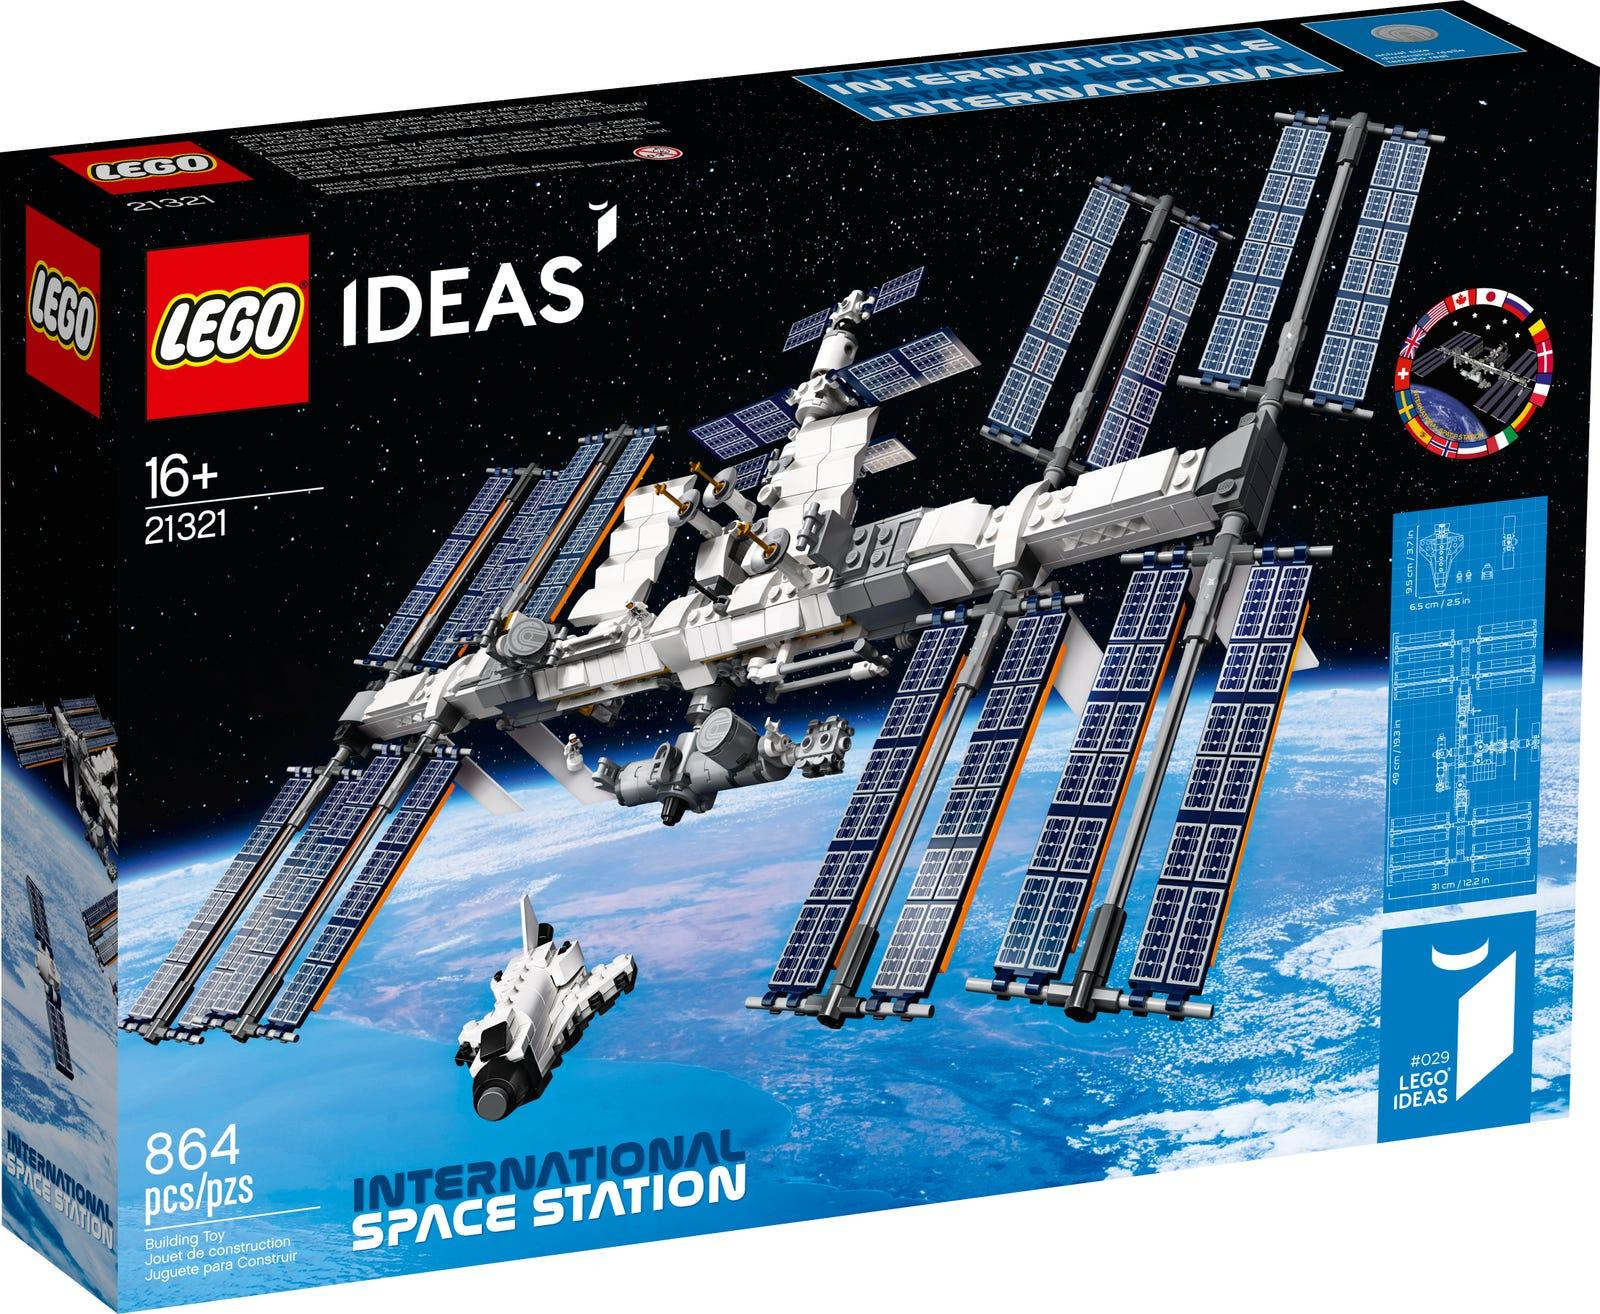 Lego made an International Space Station kit, including Space Shuttle and robotic arm